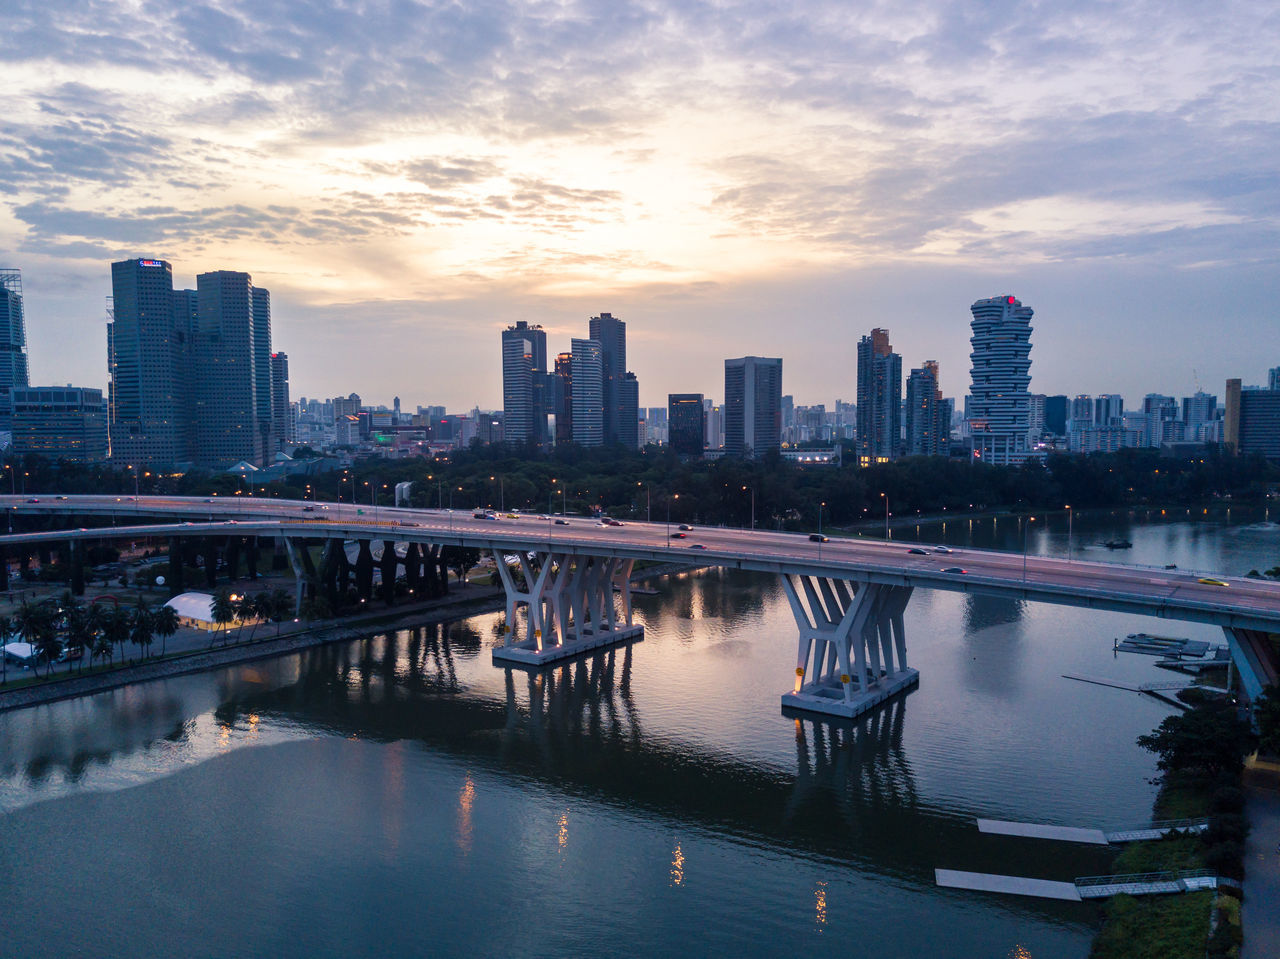 Architecture ASIA Bridge - Man Made Structure Building Exterior Built Structure City Cityscape Cloud - Sky Connection Day Drone  Modern Nature No People Outdoors Reflection River Singapore Sky Skyscraper Sunset Urban Urban Skyline Water Waterfront